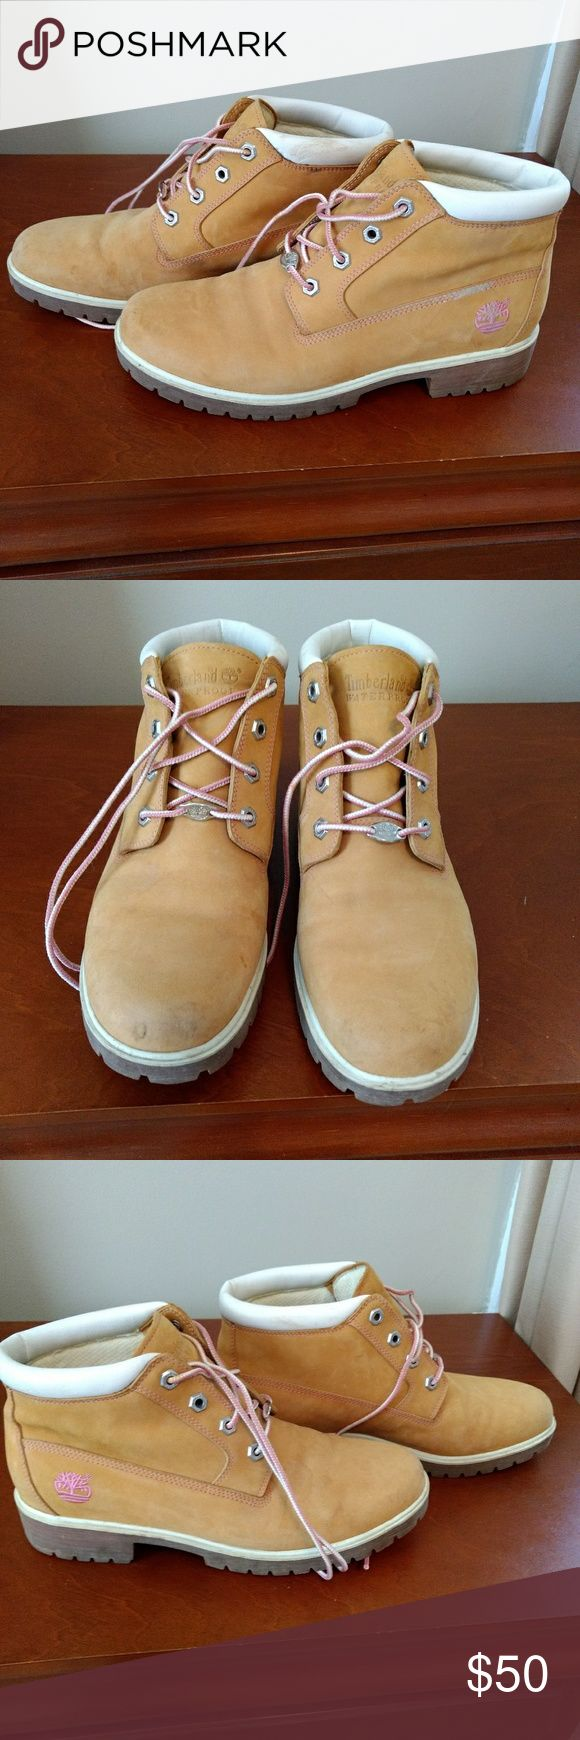 Timberland women's hiking boots size 10 These are a pair of Timberland women's hiking boots with pink accents on the side and pink and white laces. These are very cute! I bought them for a trip to the South thinking that I would need to wear Timberlands! I only wore them once or twice but not for any kind of outdoor things. I haven't had occasion to wear them so they have been sitting on my shoe tree. There's a lot of wear left in these. A good cleaning will make them good as new. The pink…